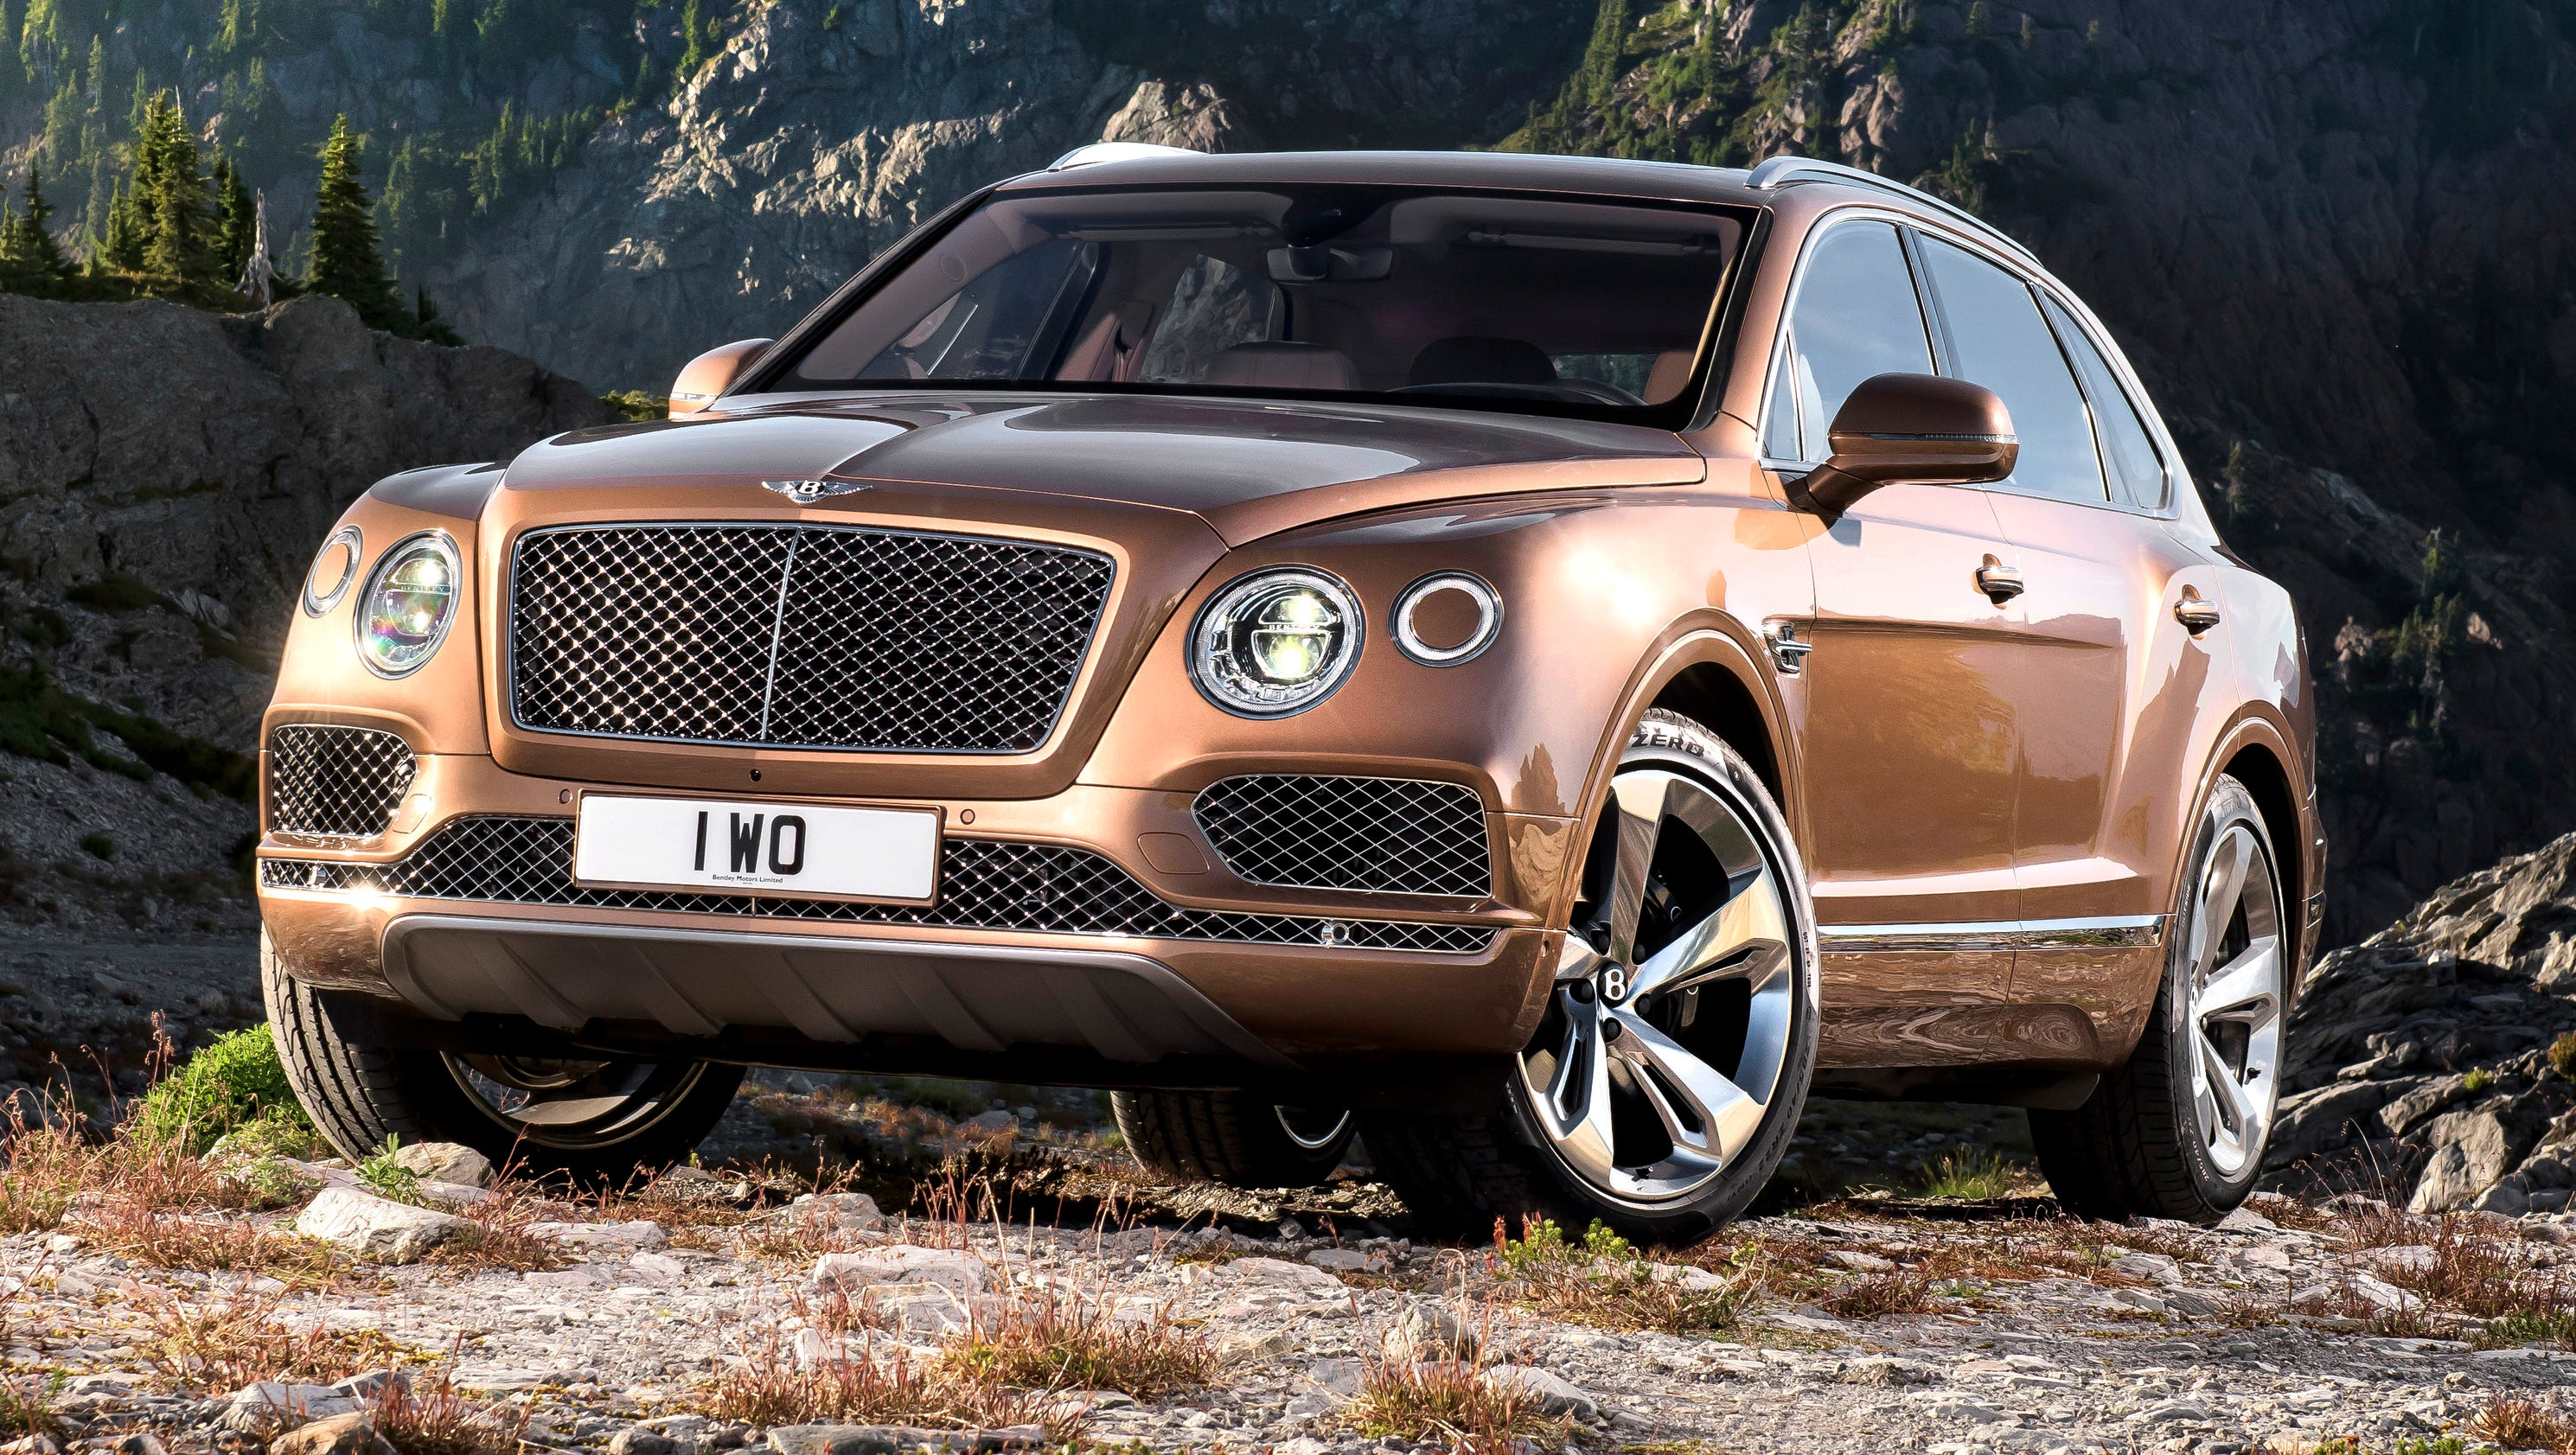 is bentley of cars cost international price a much the what amp click does car here overview unique how